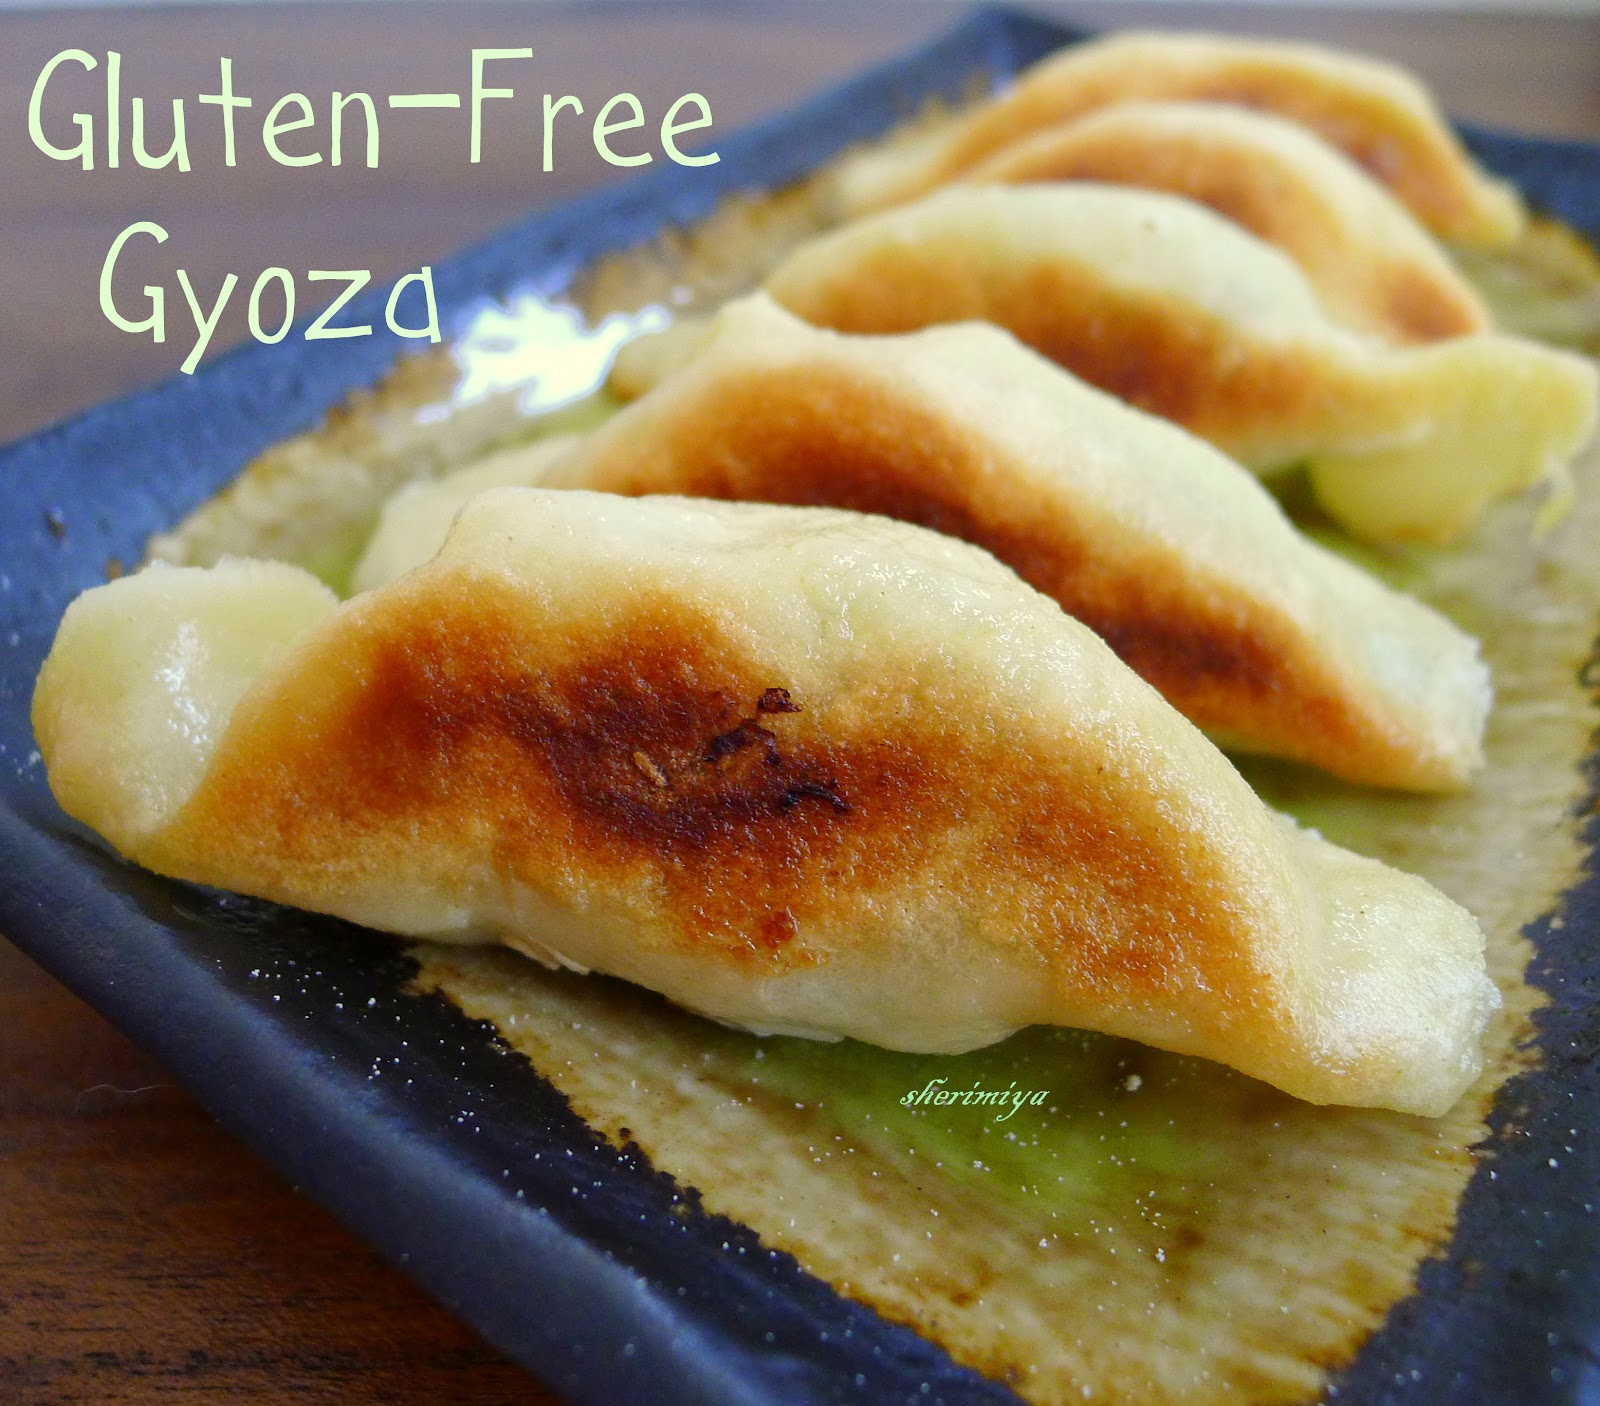 Happy Little Bento: Gluten-Free Gyoza Bento and Method